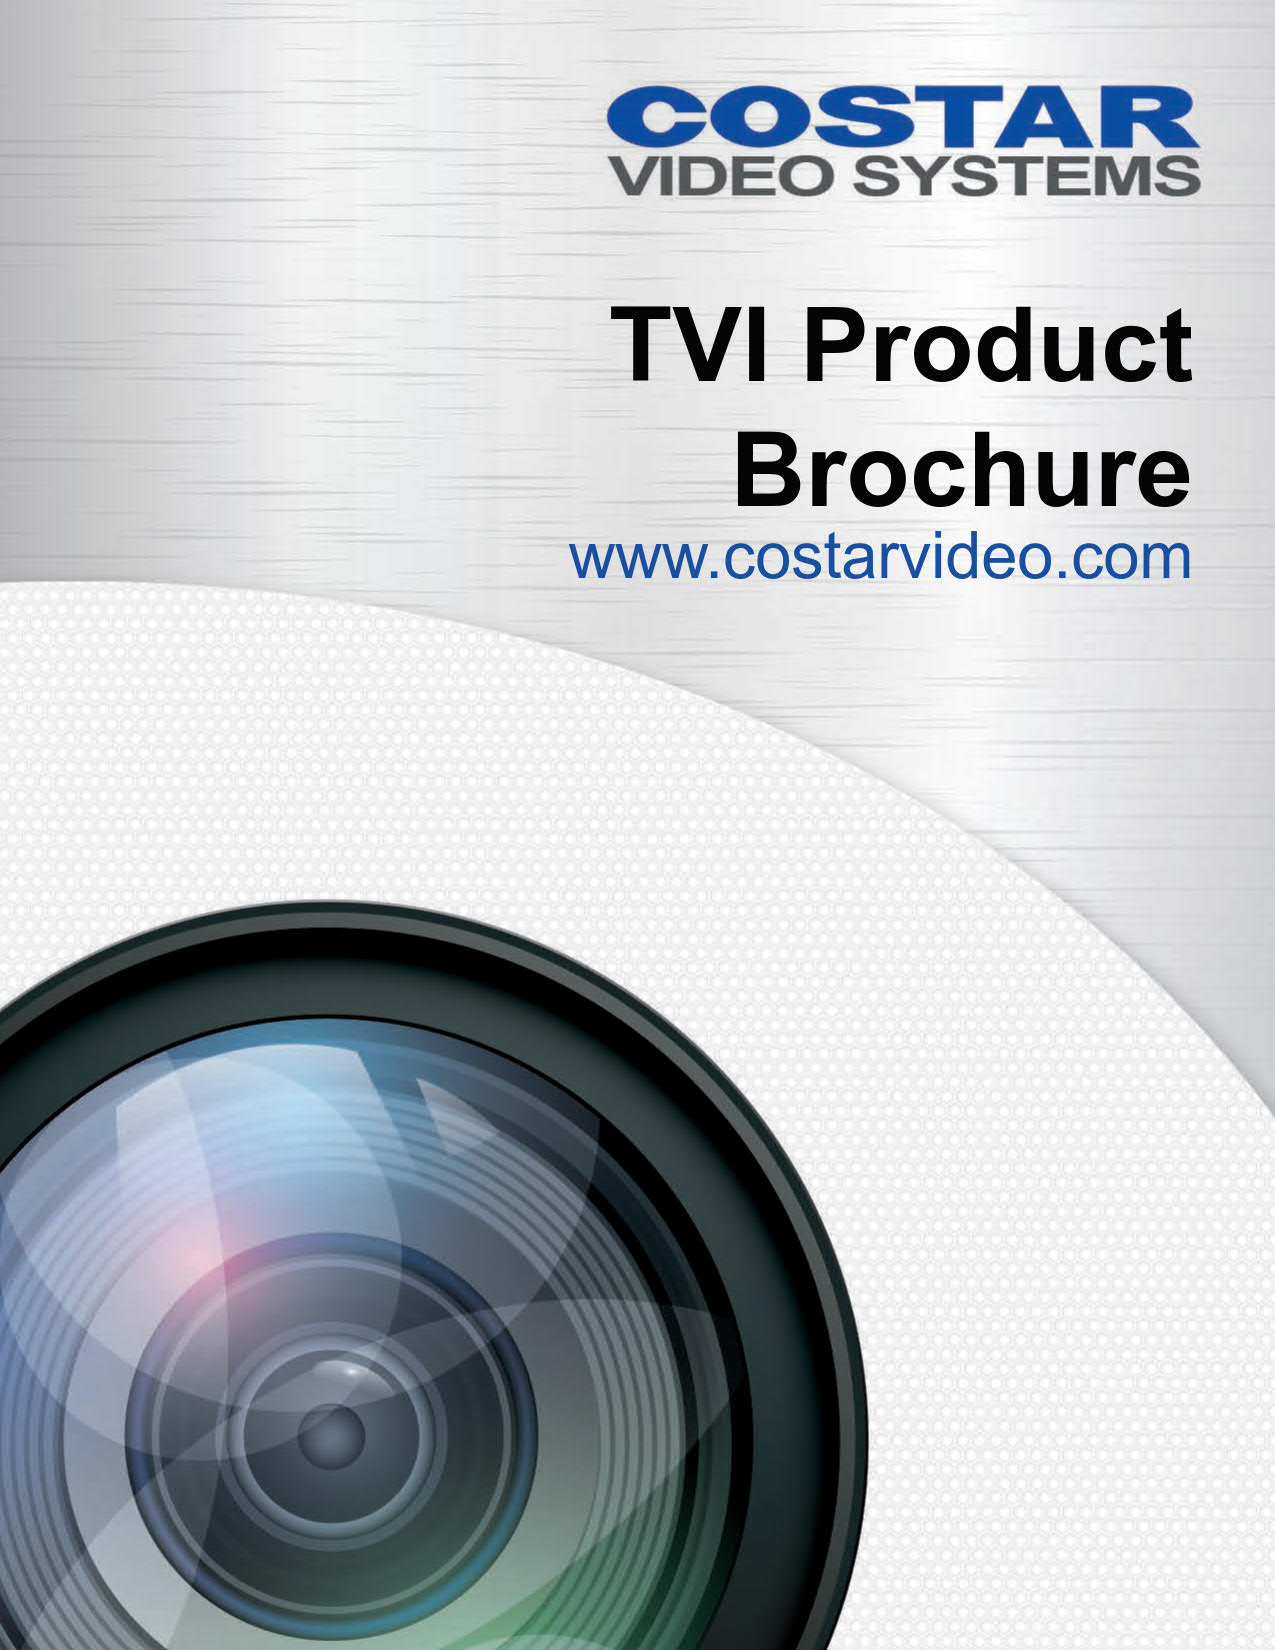 EH_Costar Video Systems - TVI Brochure_0718_1